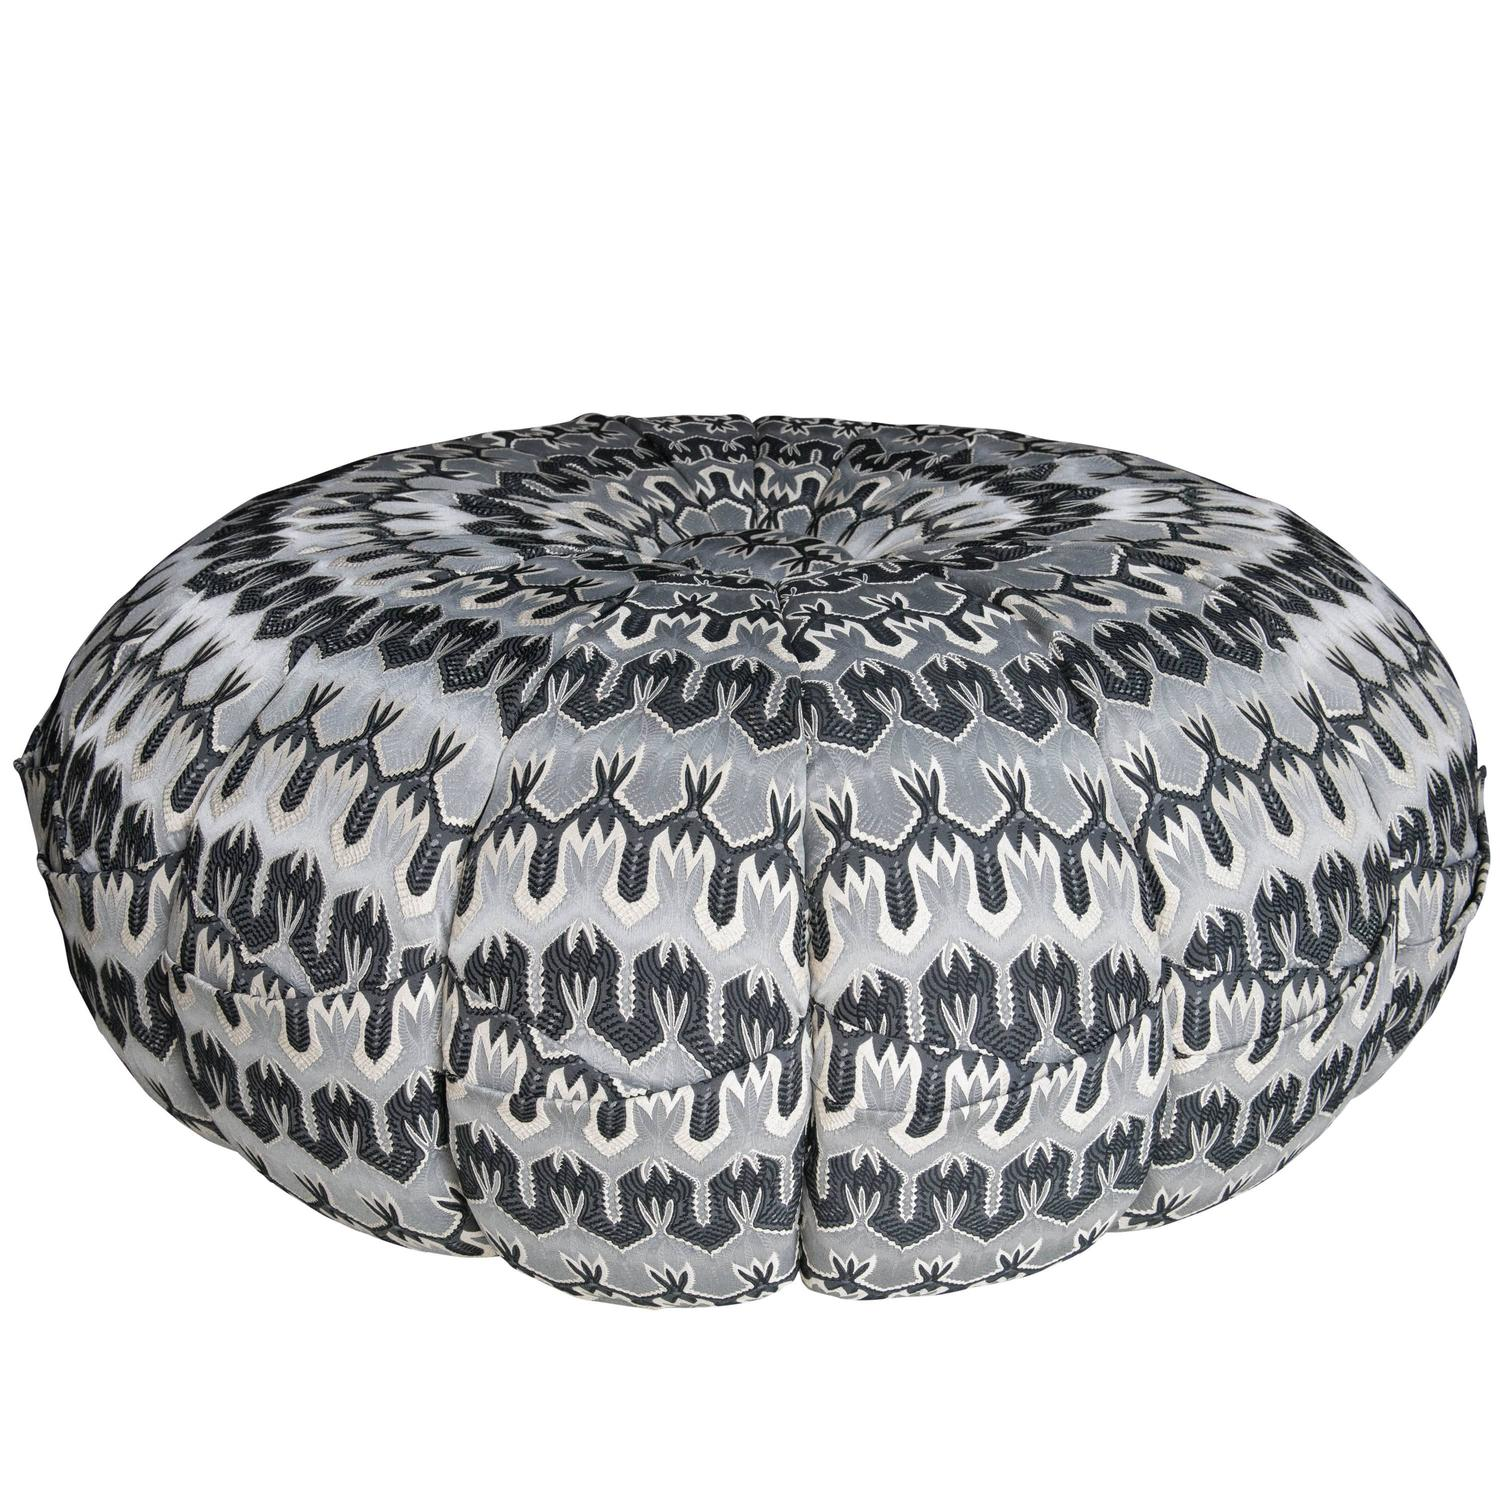 puntaspillone pouf by missoni for sale at stdibs -